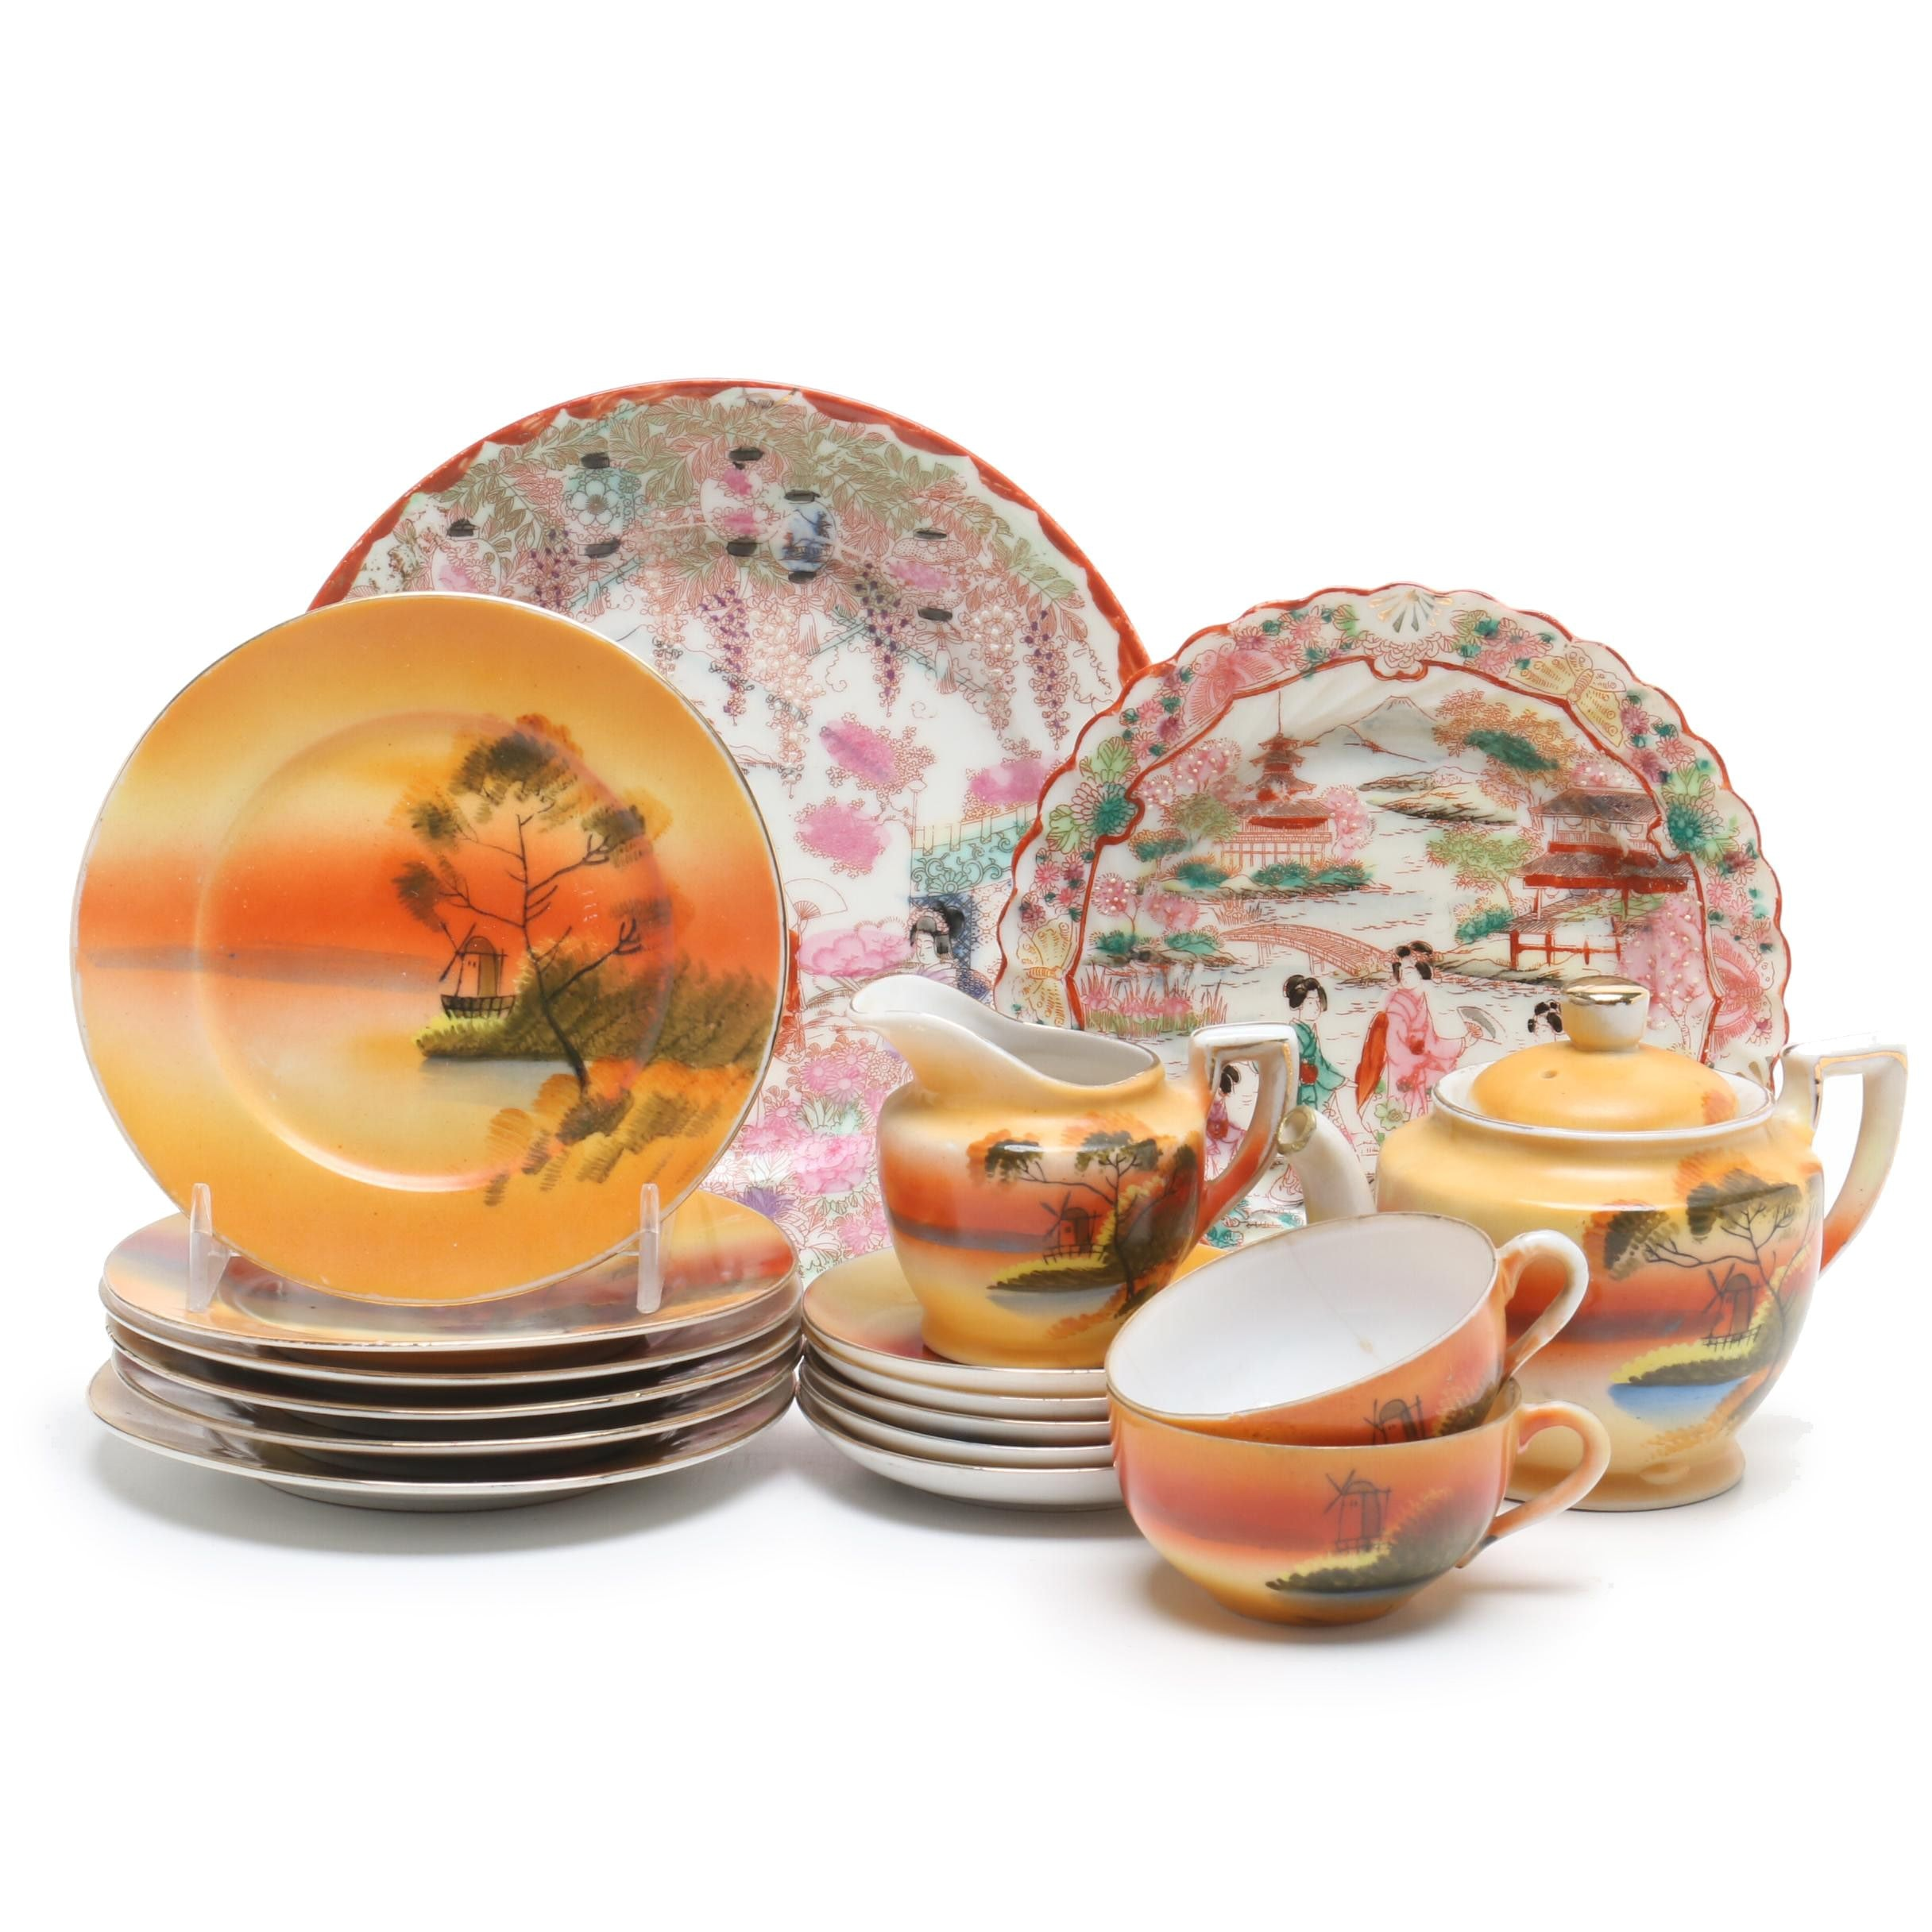 Handpainted Japanese Porcelain Plates and Tea Service